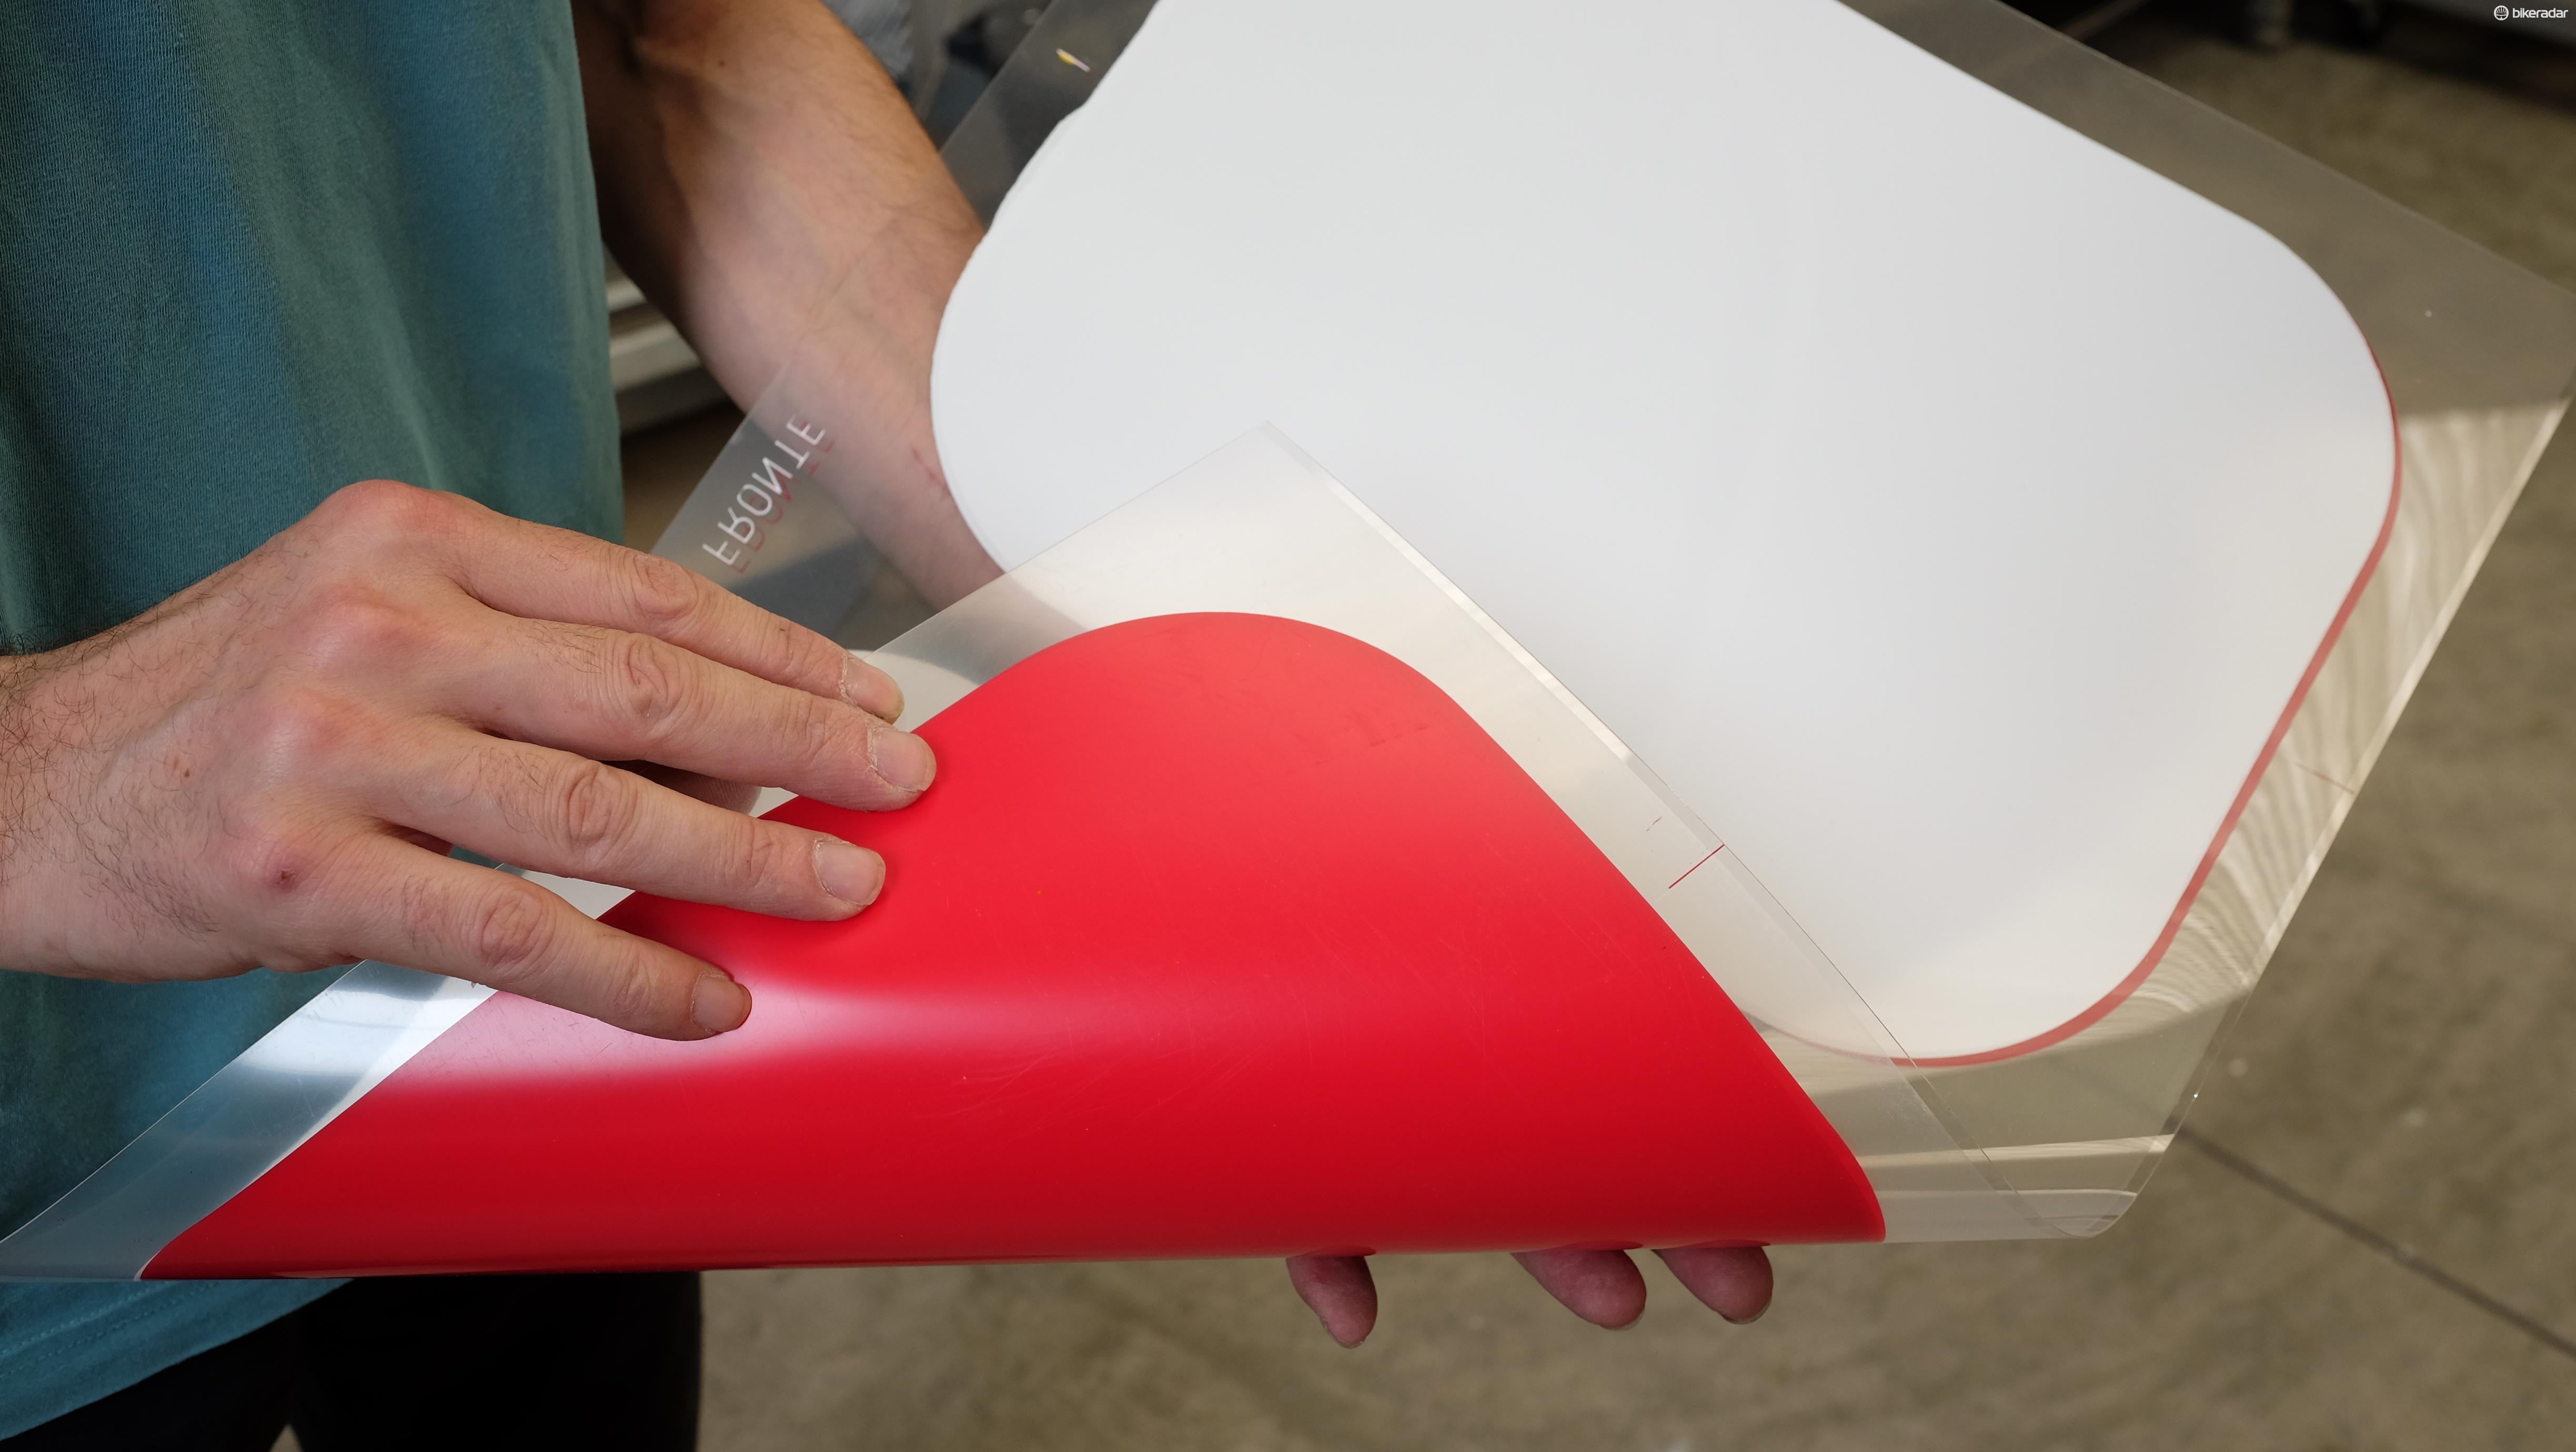 Once the correct finish is achieved the polycarbonate is then ready for vacuum forming